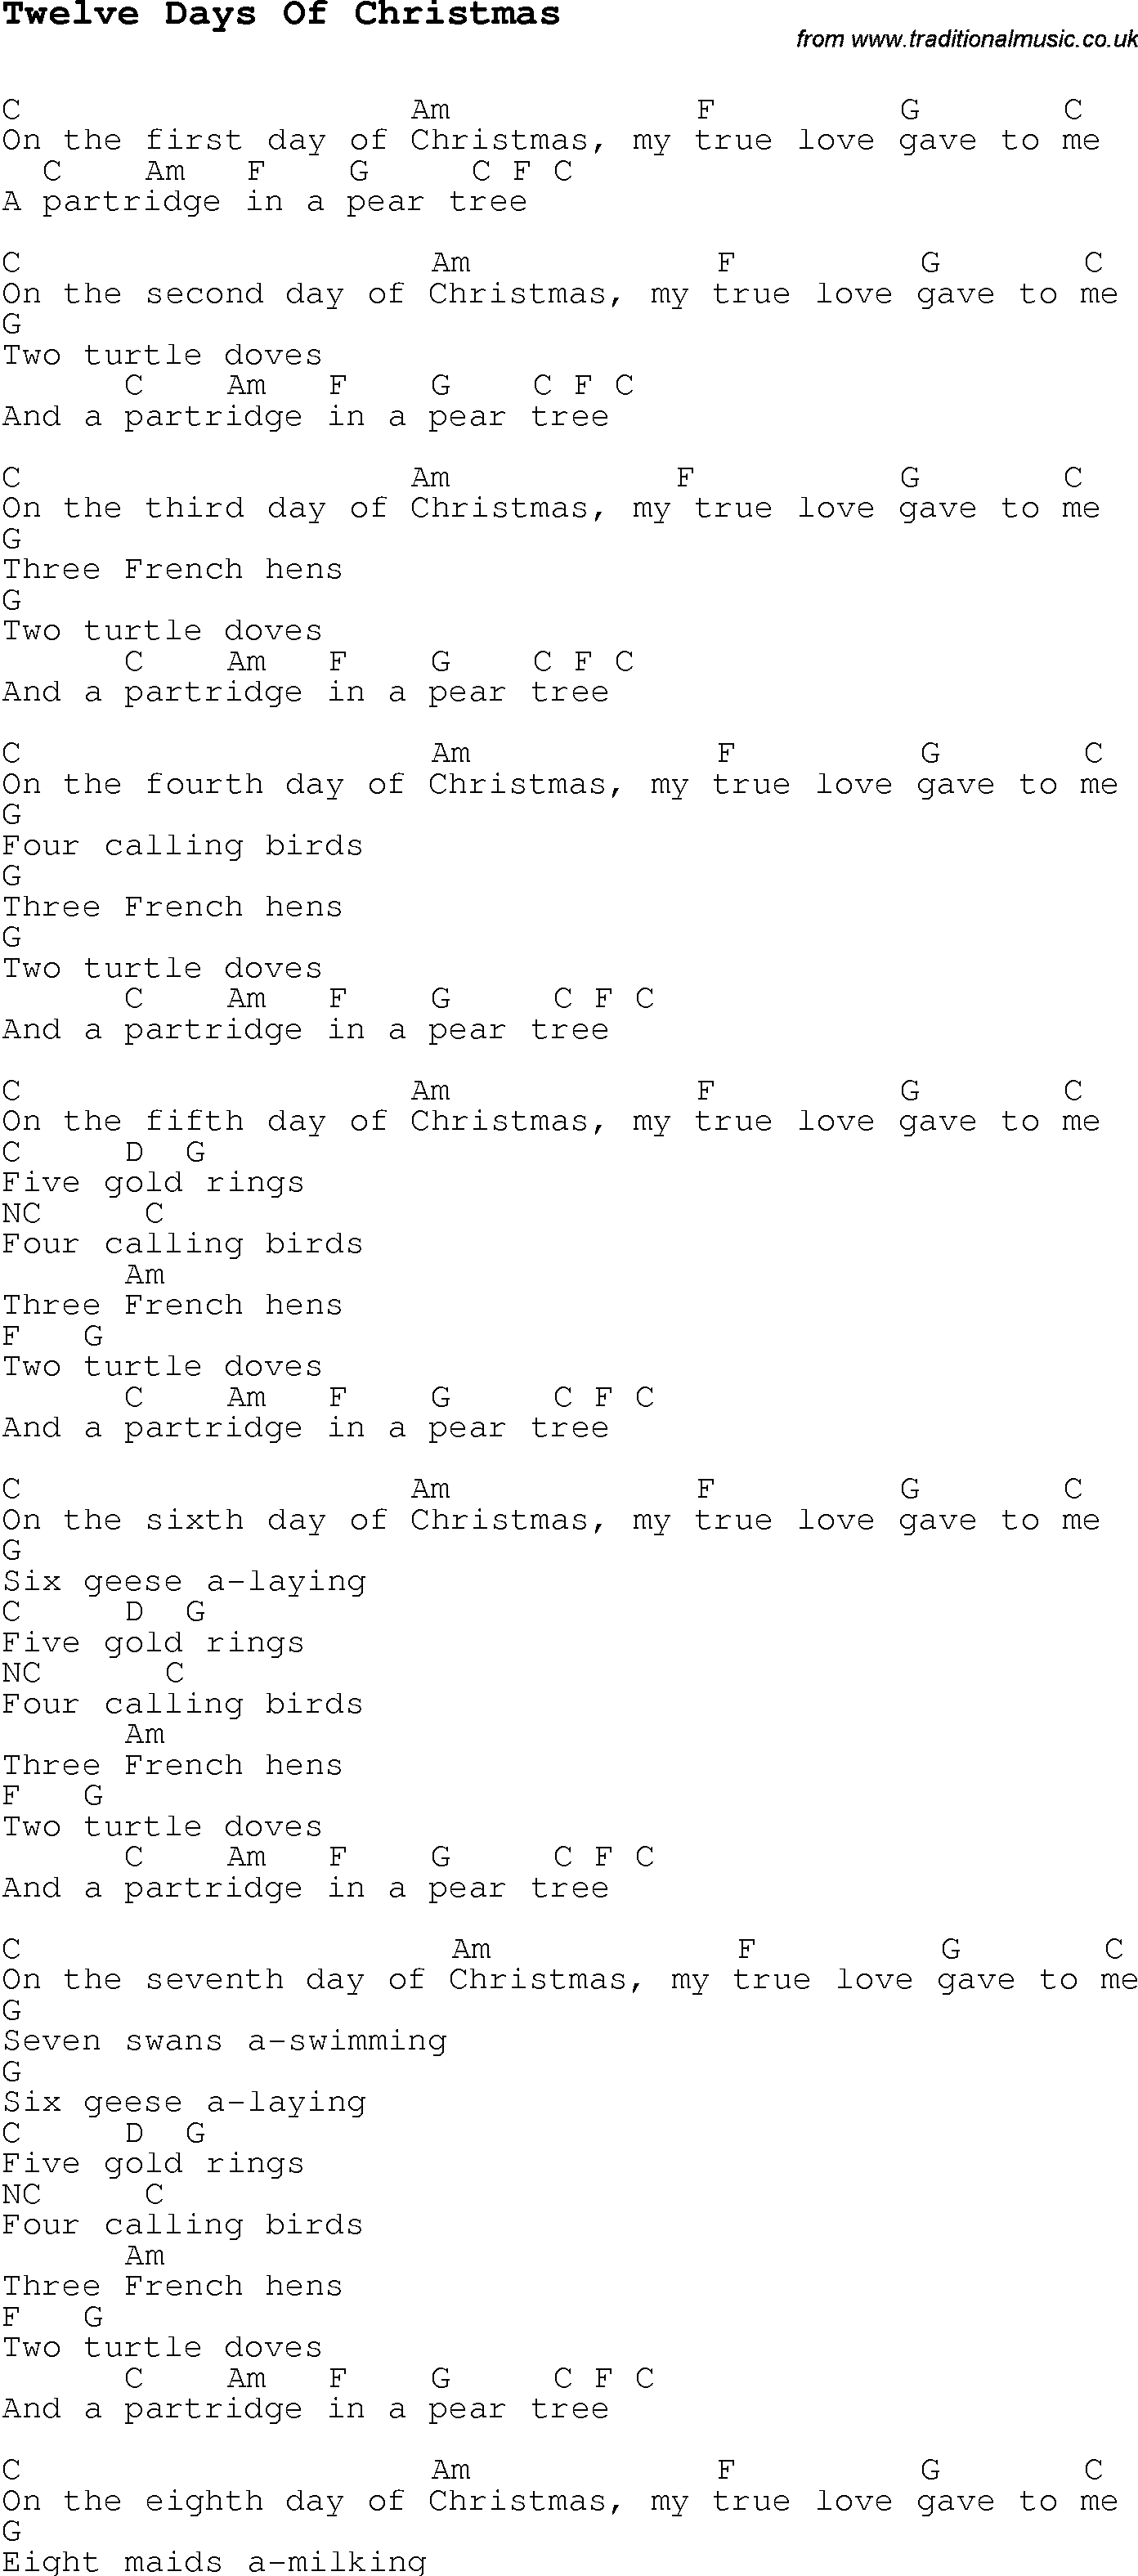 christmas songs and carols lyrics with chords for guitar banjo for twelve days of christmas - 12 Days Of Christmas Lyrics